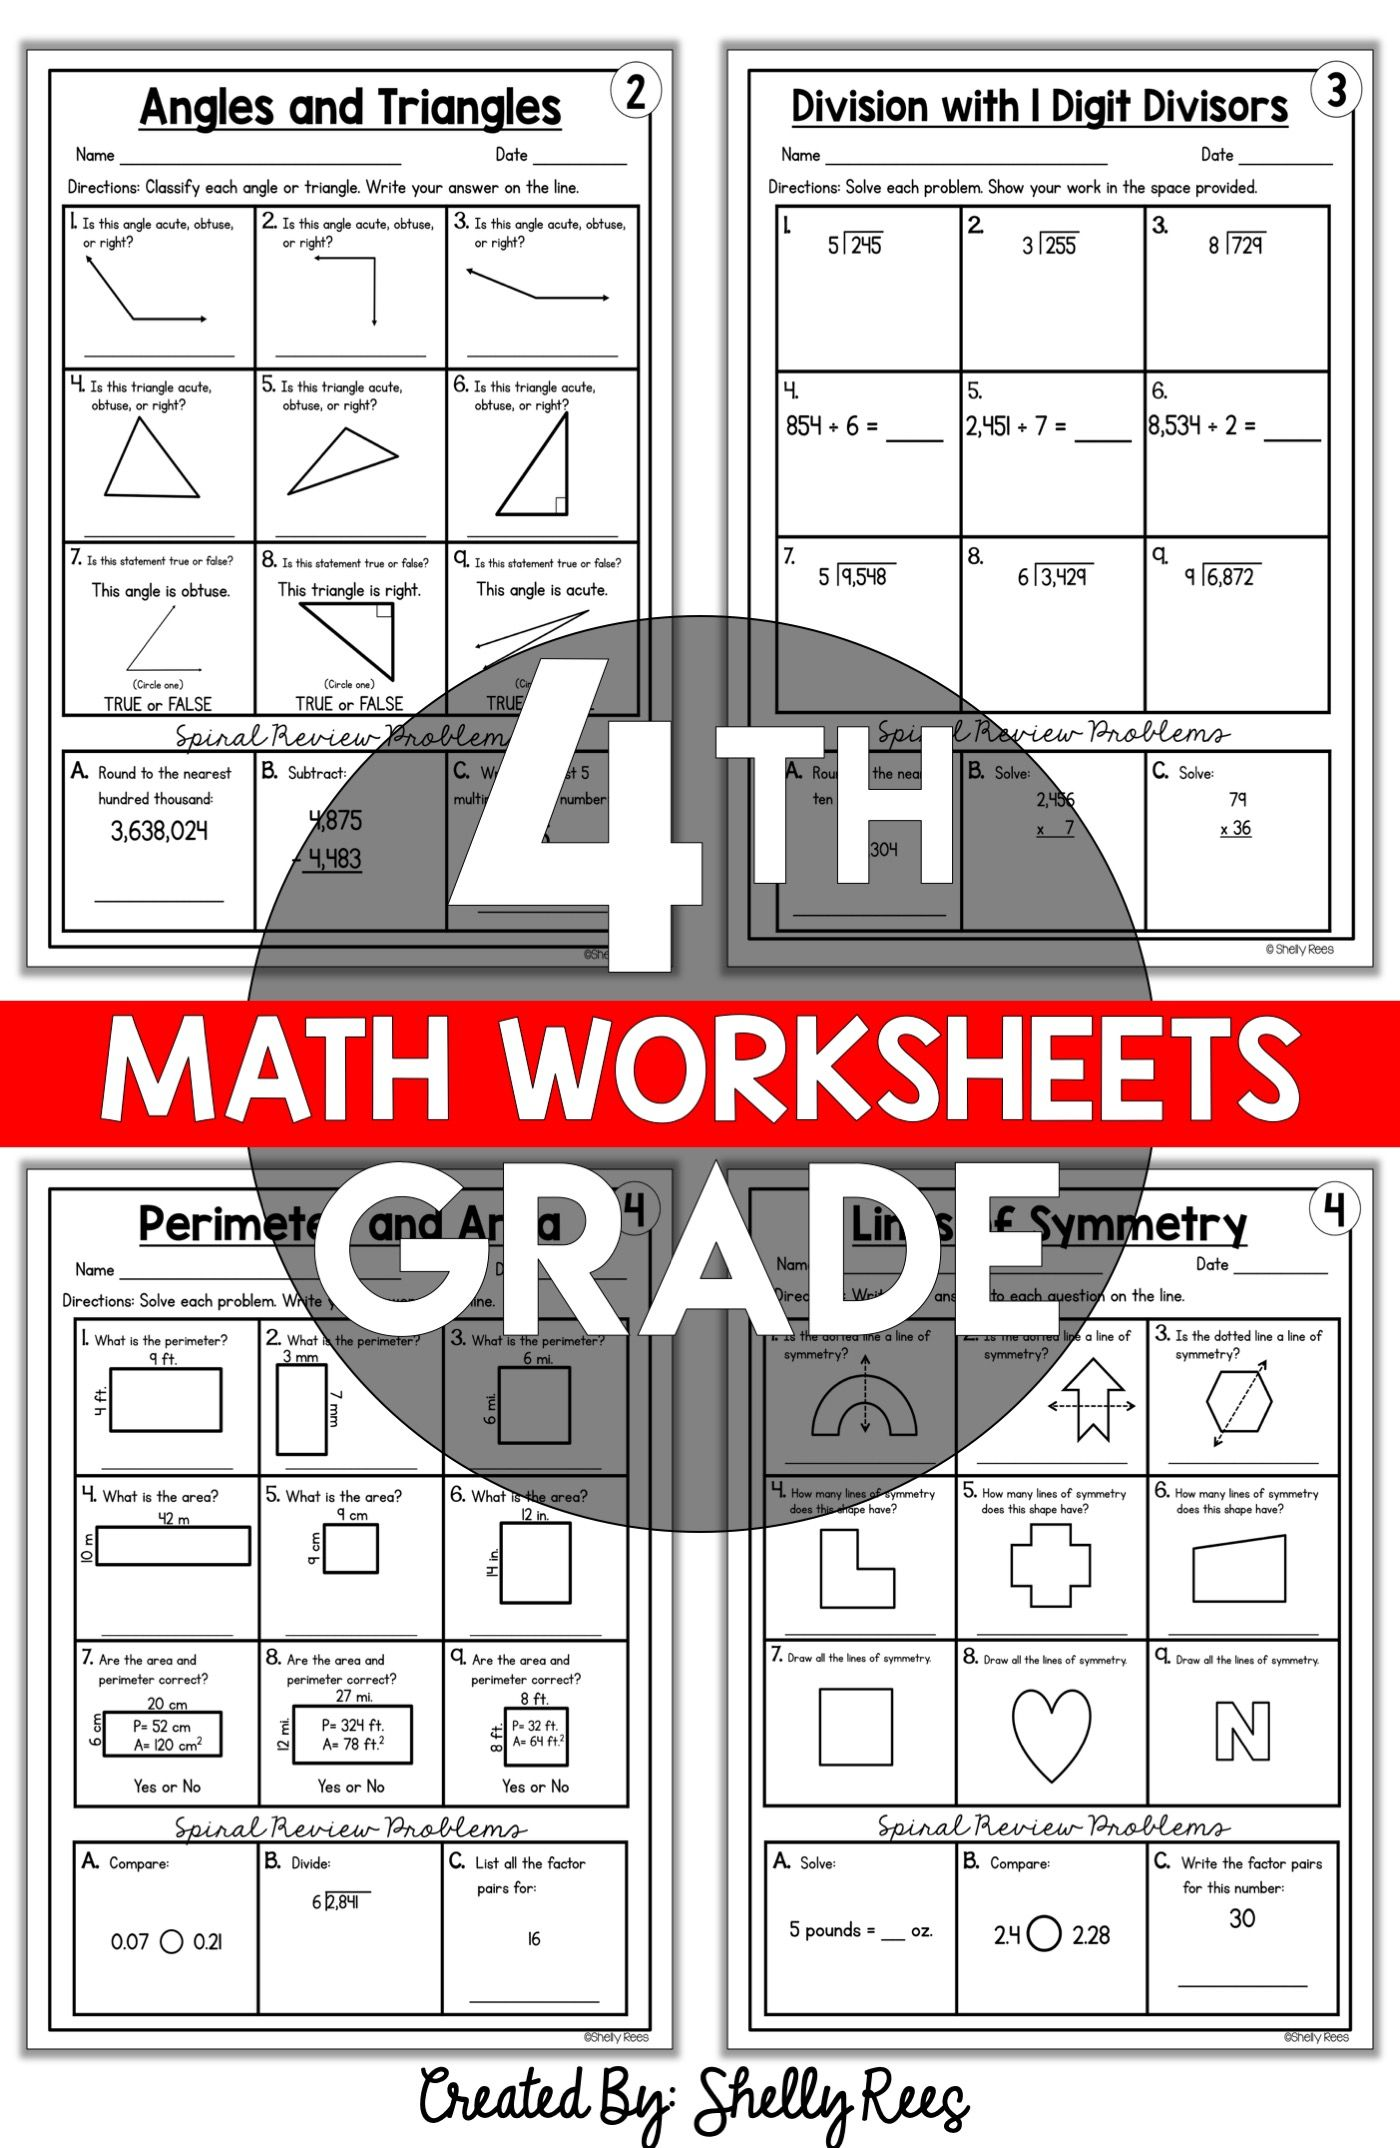 4th Grade Math Worksheets Free And Printable In